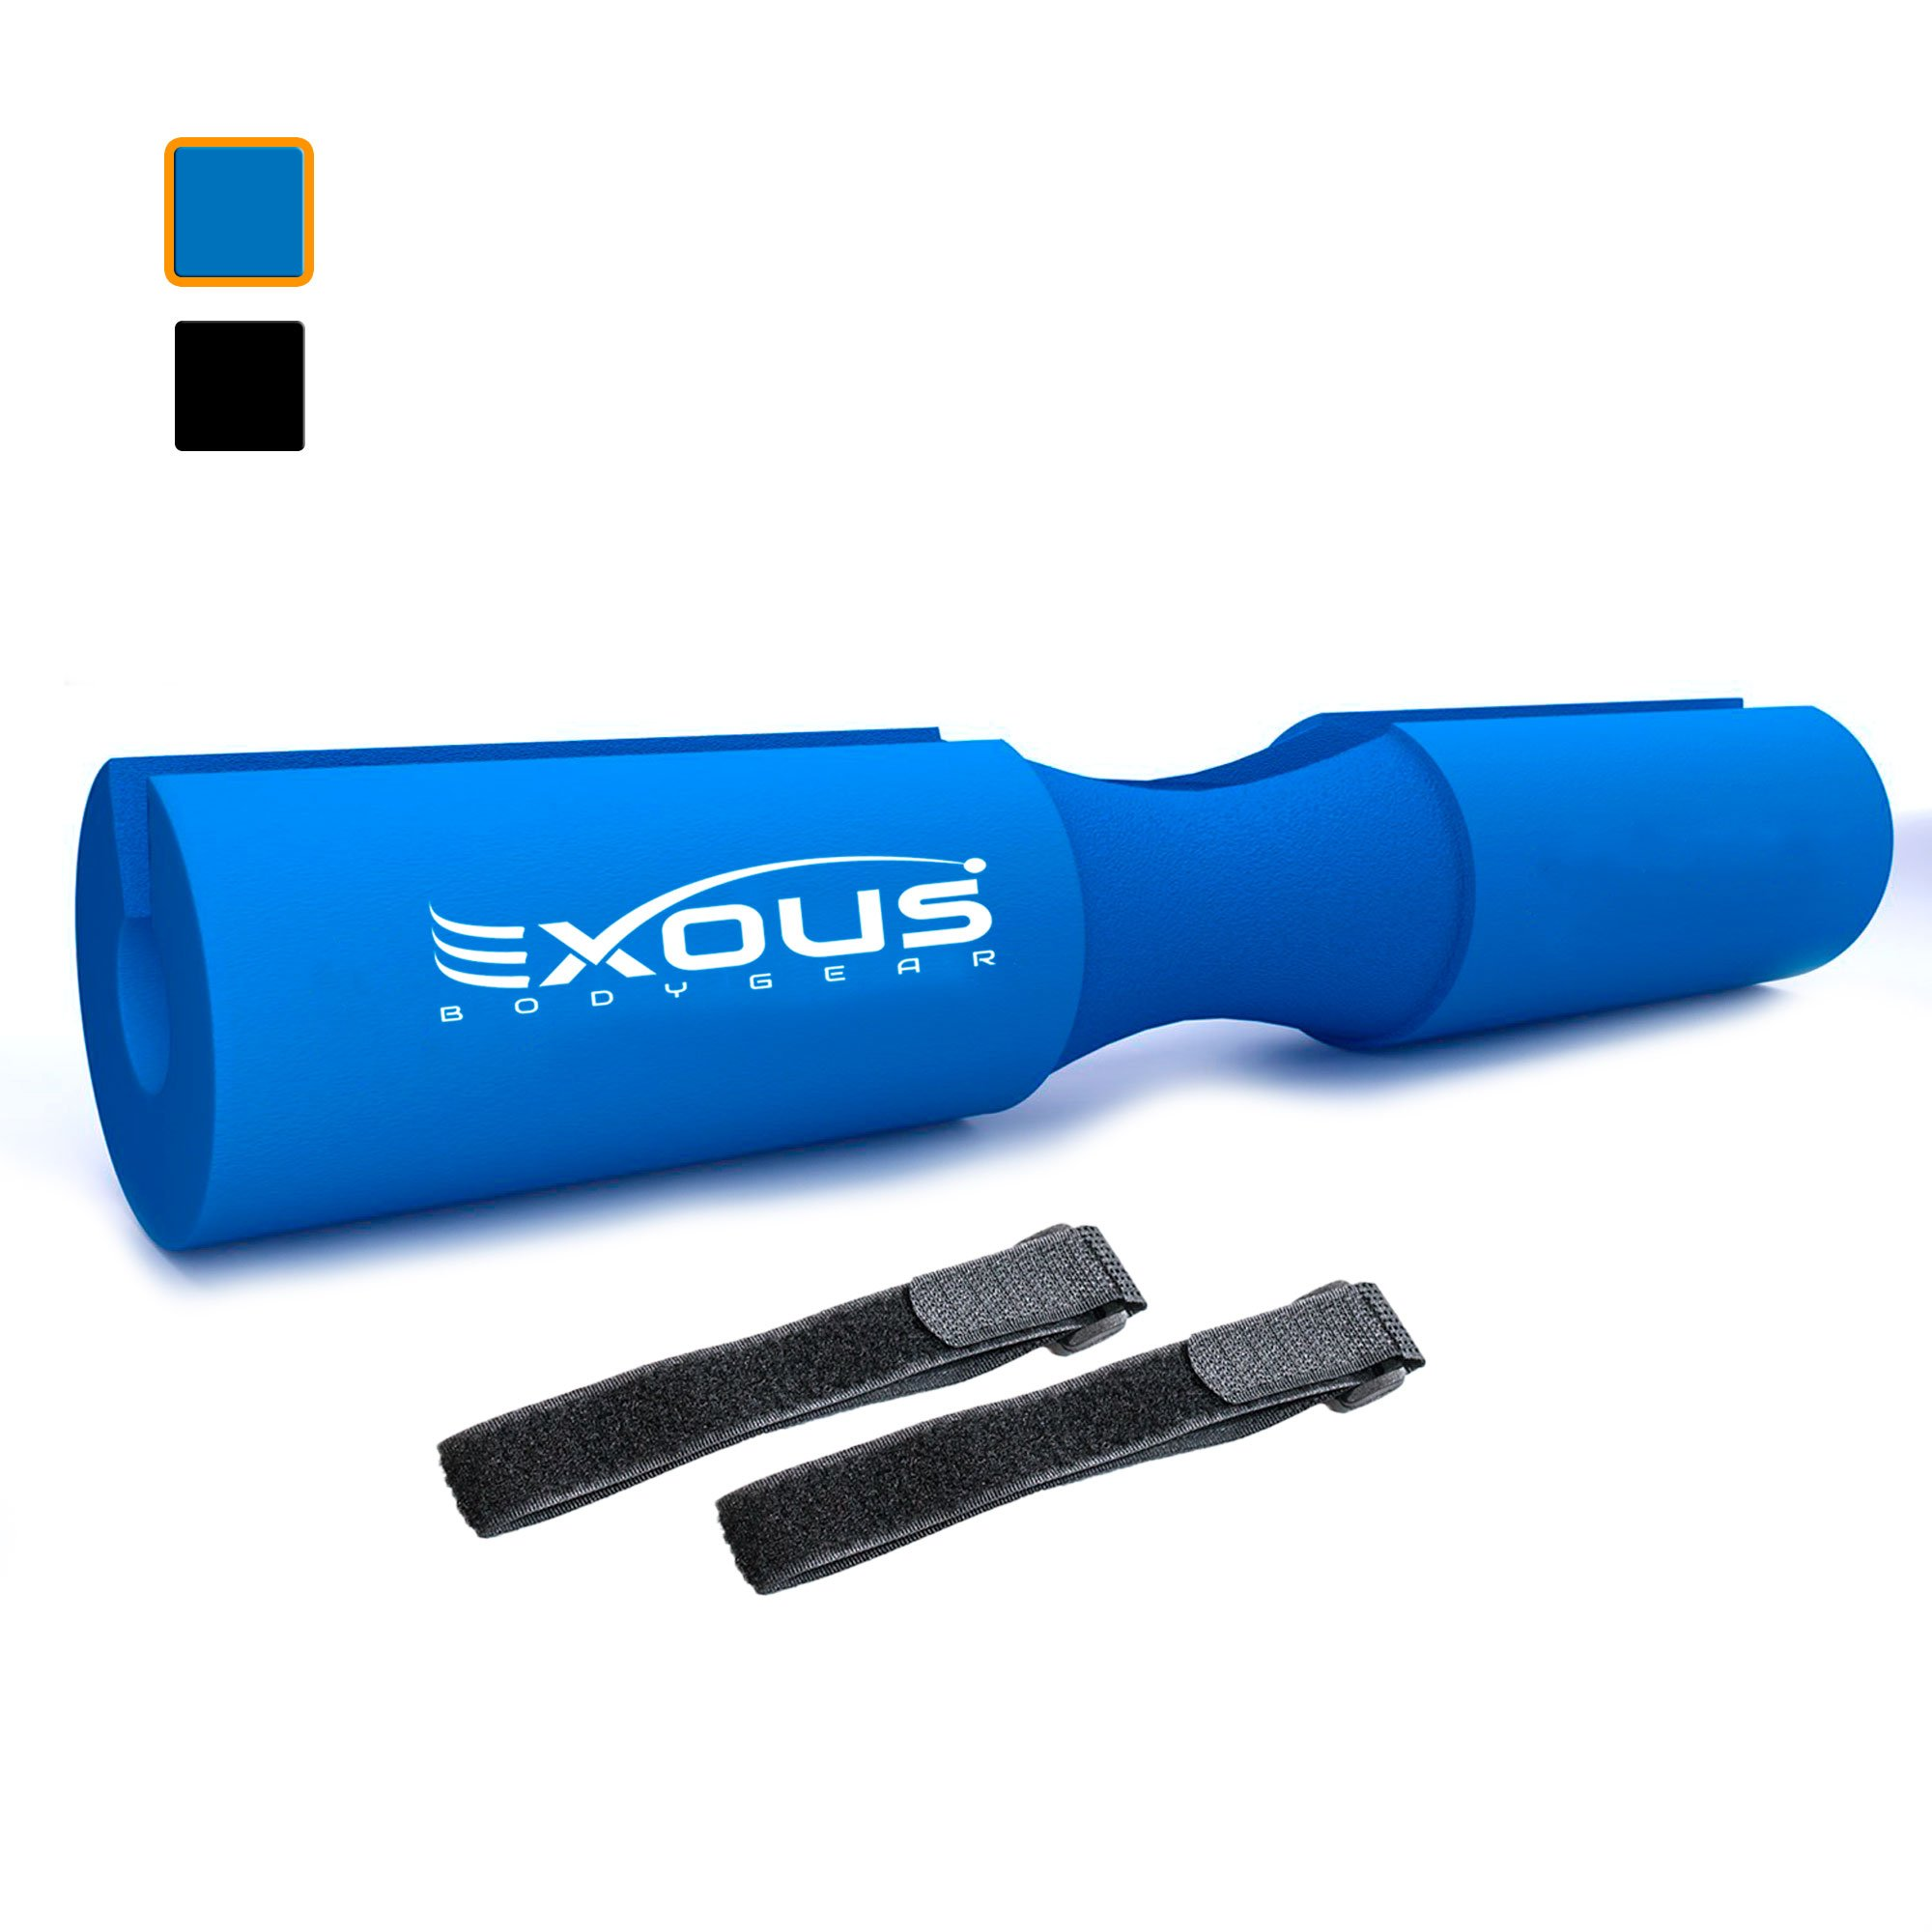 EXOUS Bodygear Barbell Pad Squat Bar Foam Neck Cushion - for Hip Thrusts - Fits Olympic Weight Lifting Bar - Fixing Straps for Non Slip Fit (Cool Blue)